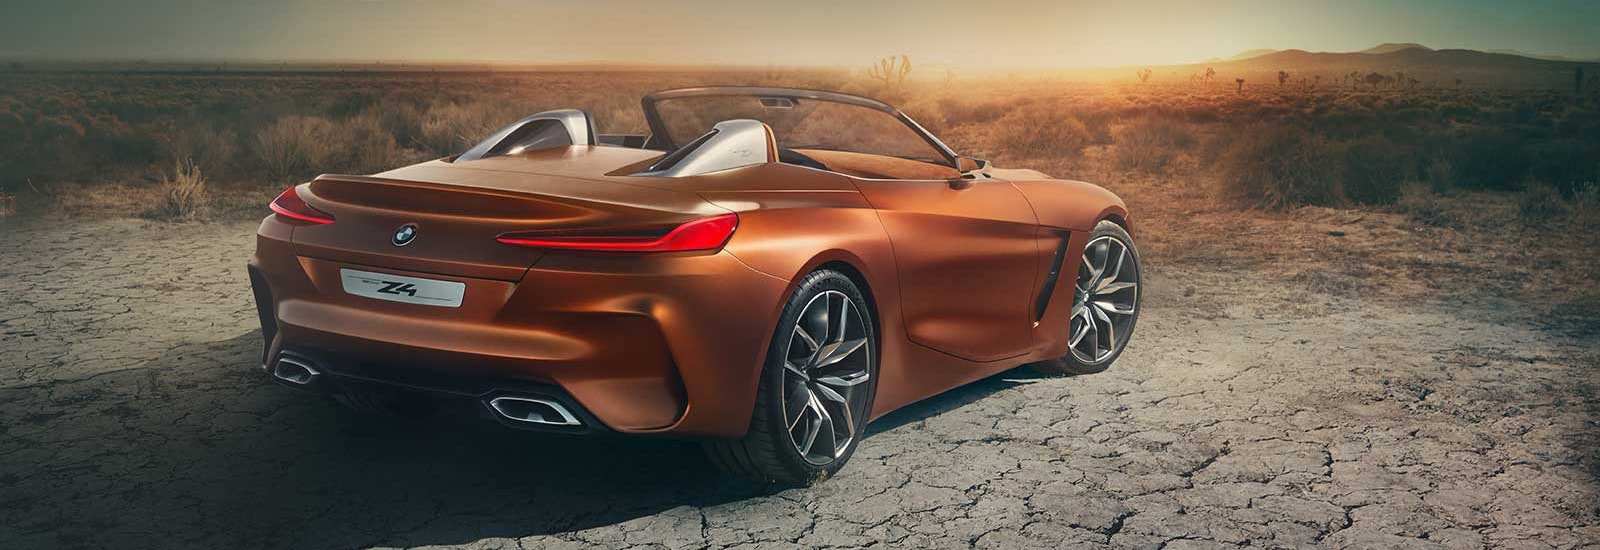 2018 Bmw Z4 Roadster Price Specs Amp Release Date Carwow